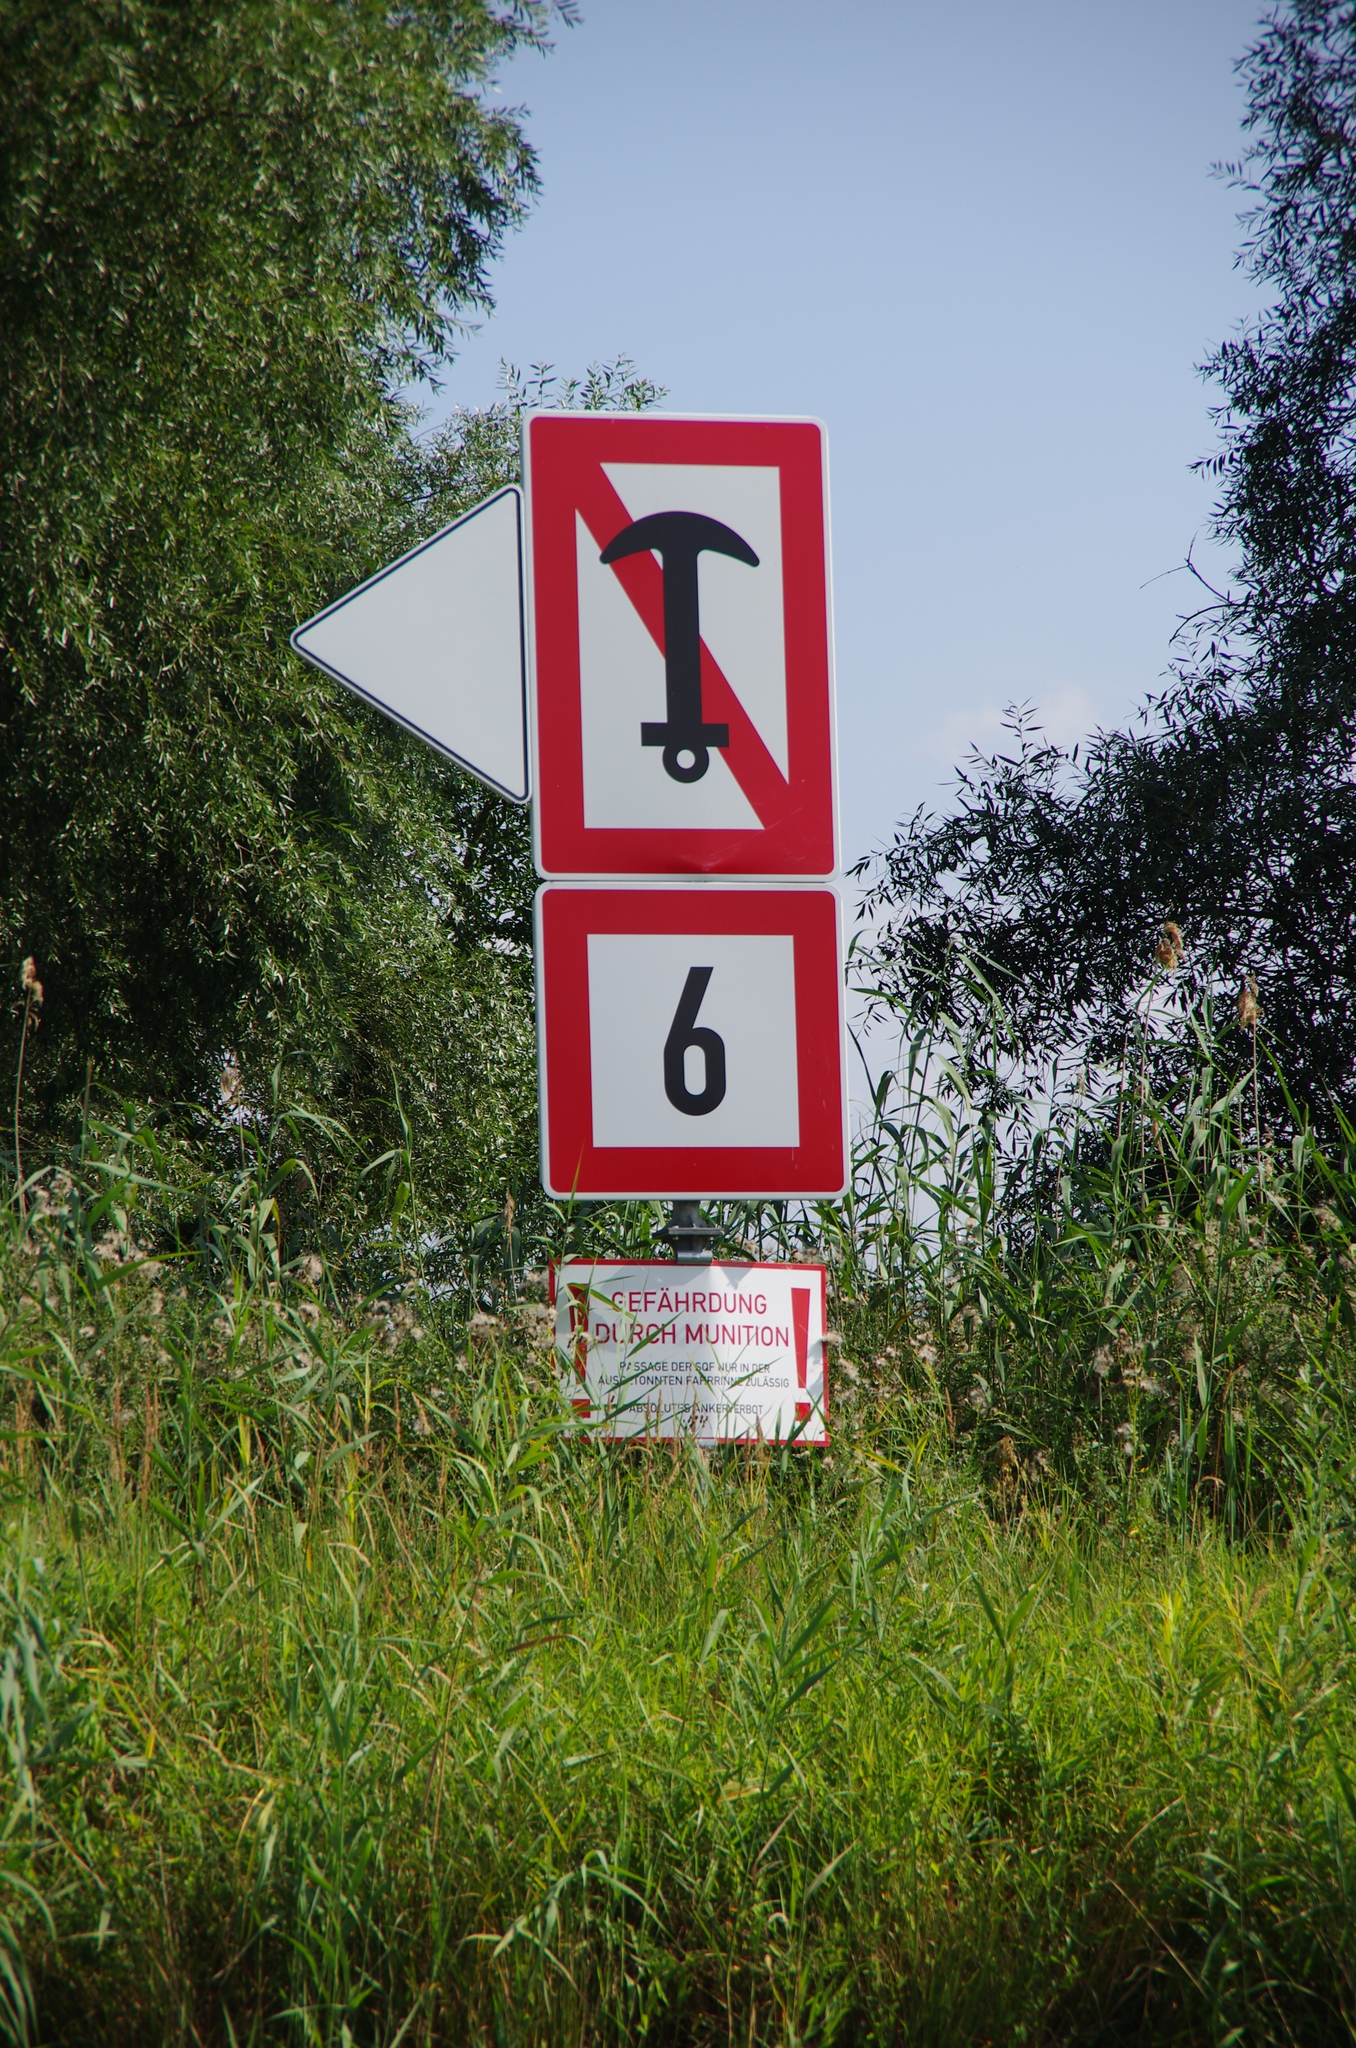 kayaking-odra-east-and-west_15-20-14_25-07-2016